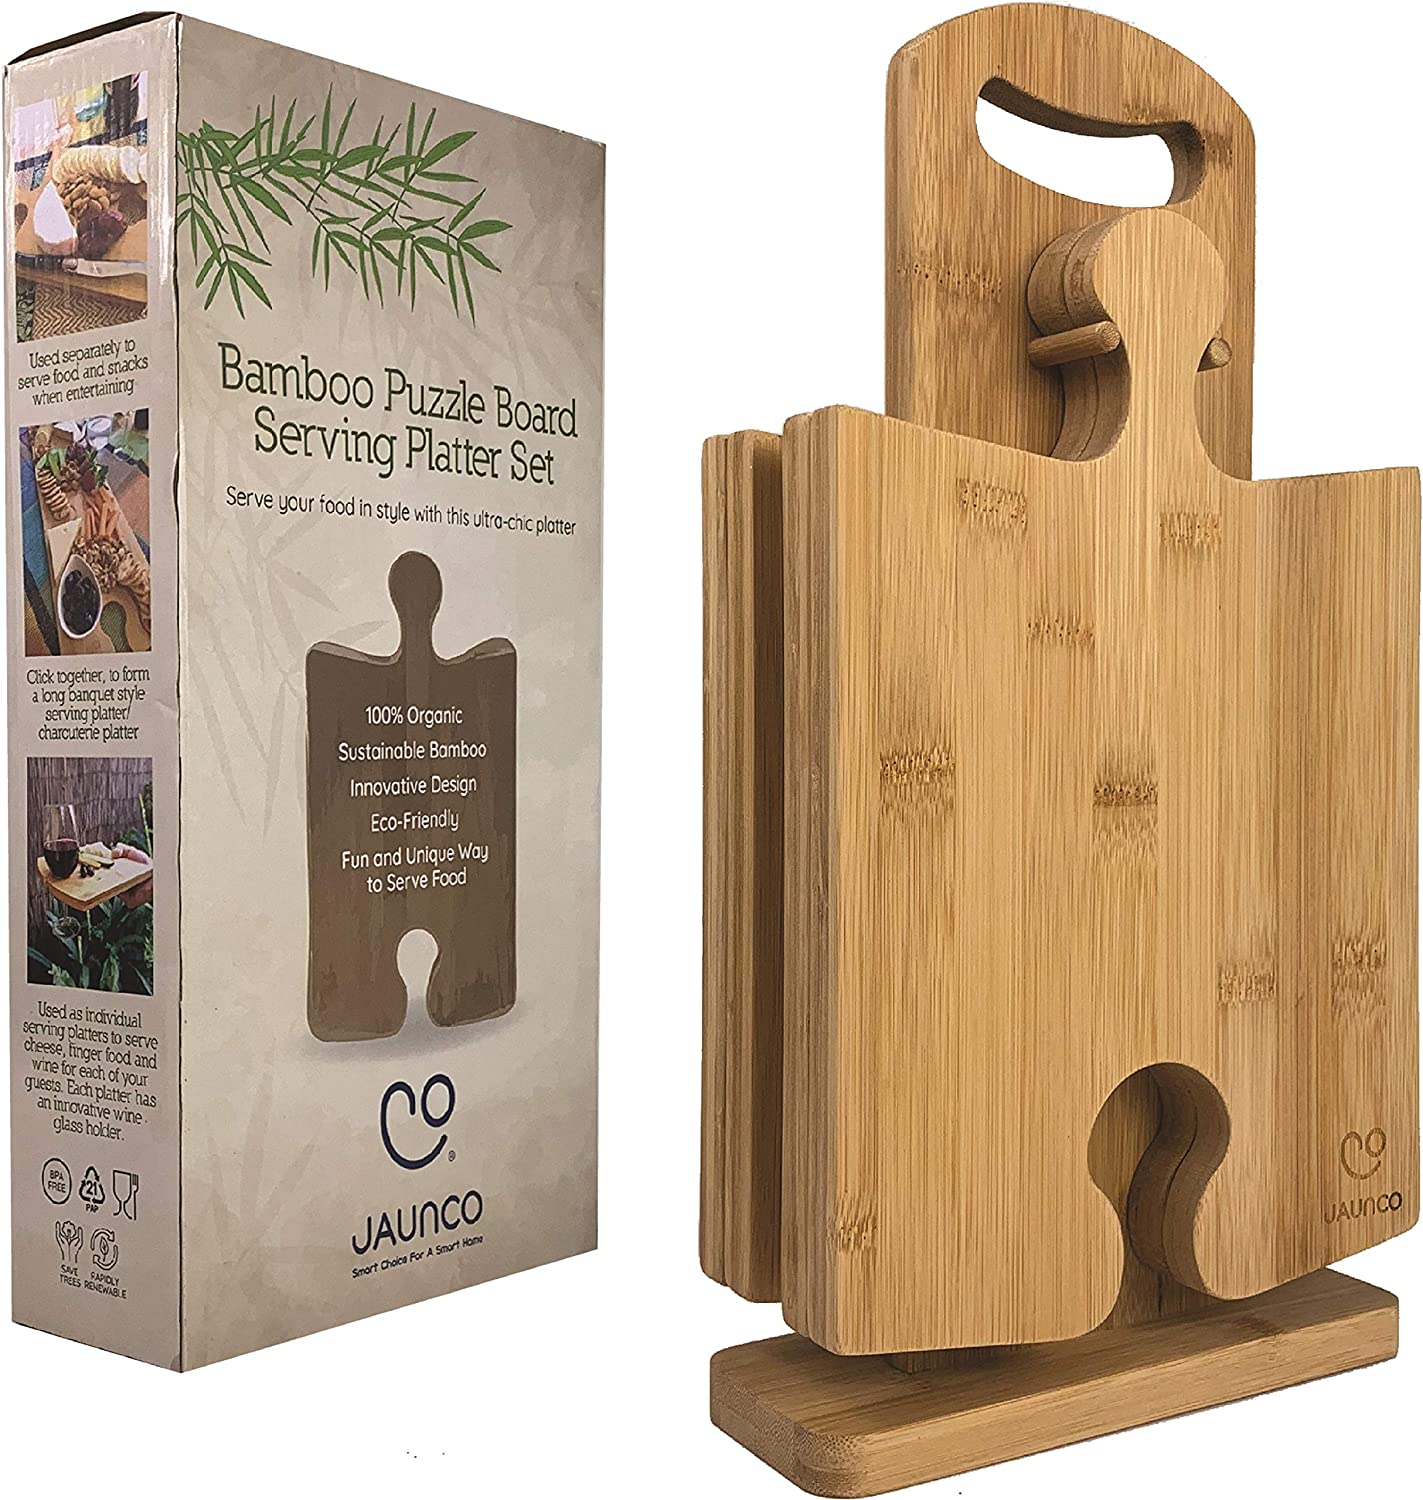 JAUNCO Premium Bamboo Cheese Board Serving Set Of 4   Large Charcuterie Boards and Serving Platter Perfect For Your Picnic Basket Wine Lover   Unique Puzzle Design With a Stand   Designed in Australia